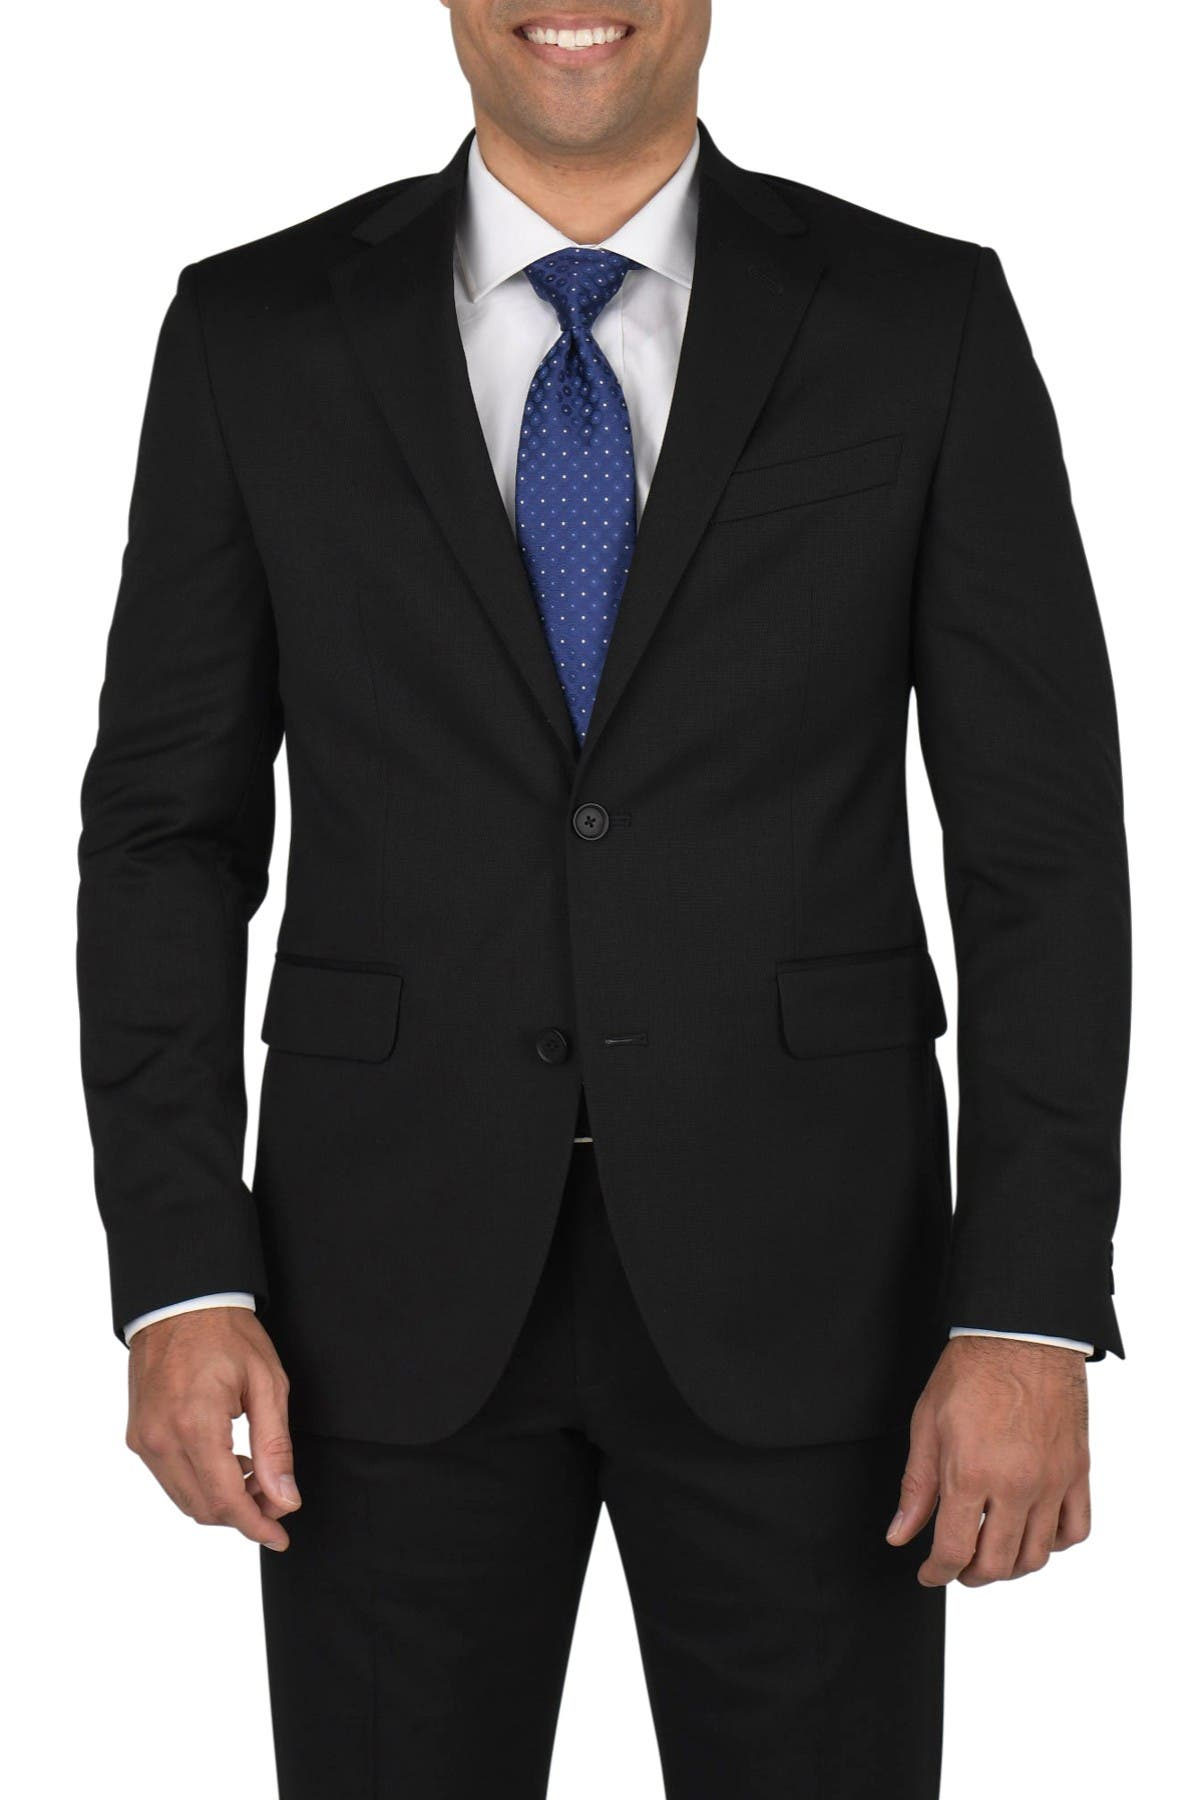 Image of Dockers Two Button Notch Lapel Stretch Fabric Modern Fit Suit Separates Jacket